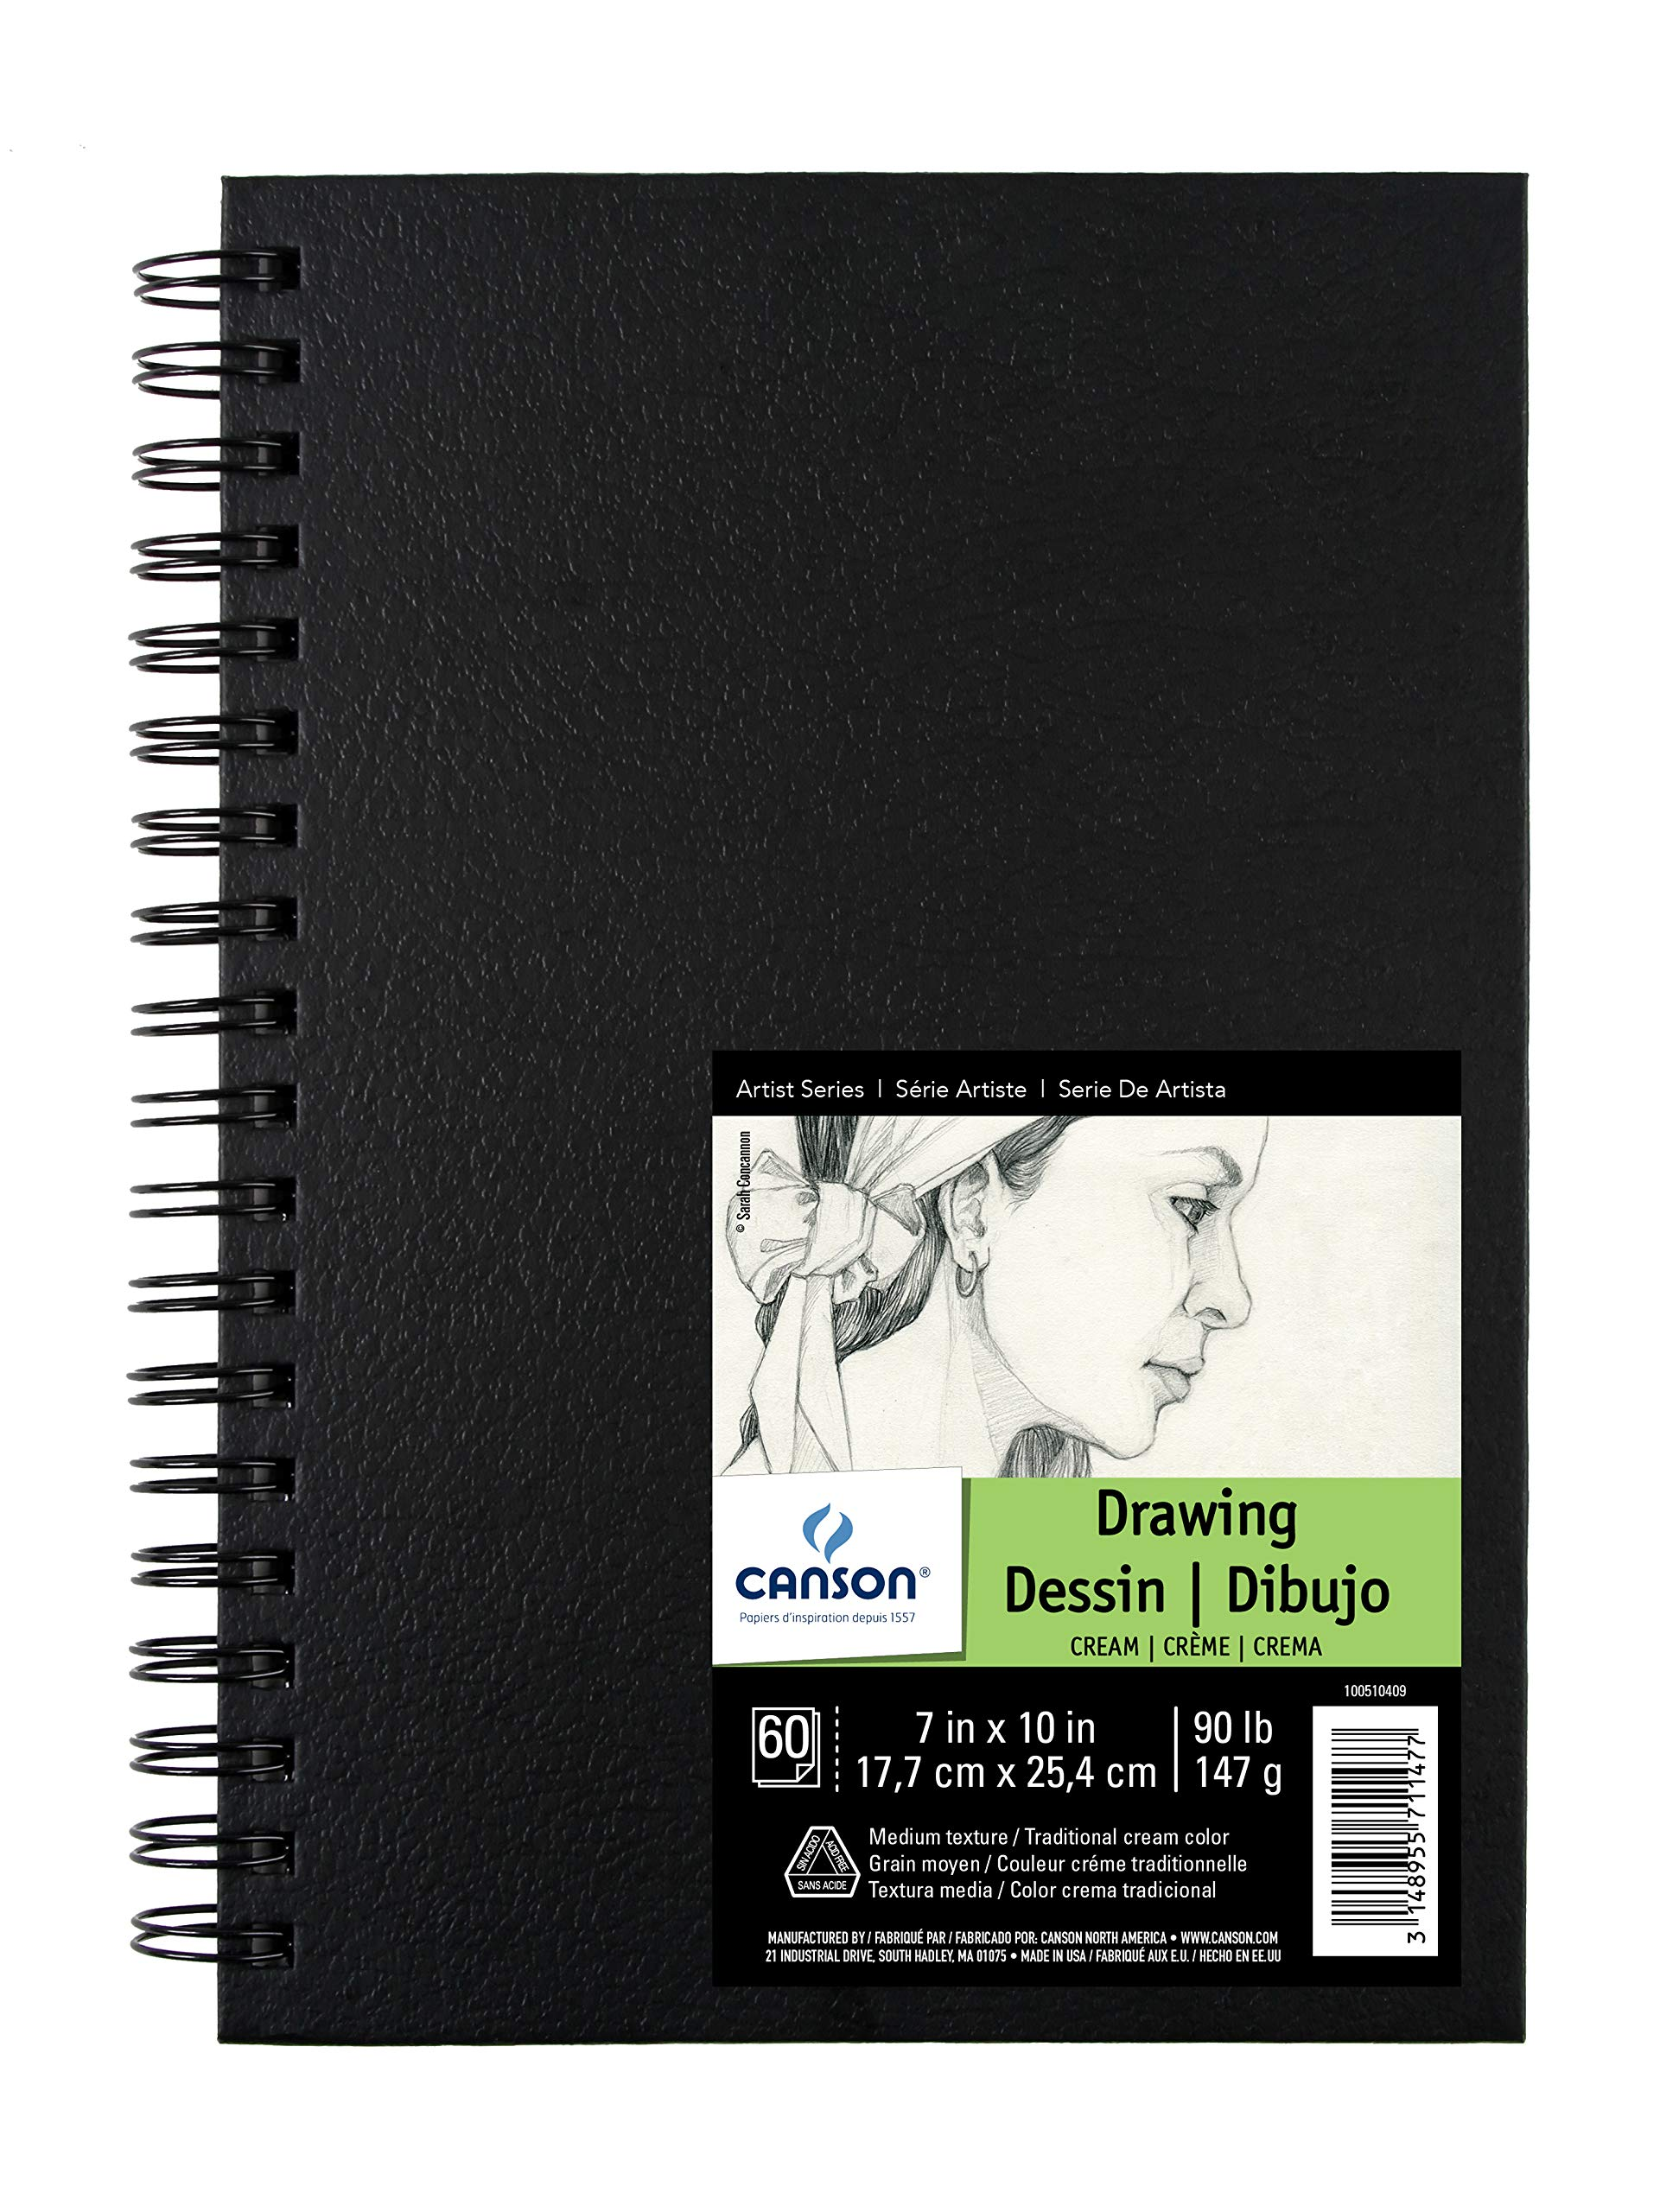 Canson Artist Series Field Drawing Book for Pencil, Pen and Felt Tip Pens, Side Wire Bound, 90 Pound, 7 x 10 Inch, 60 Sheets